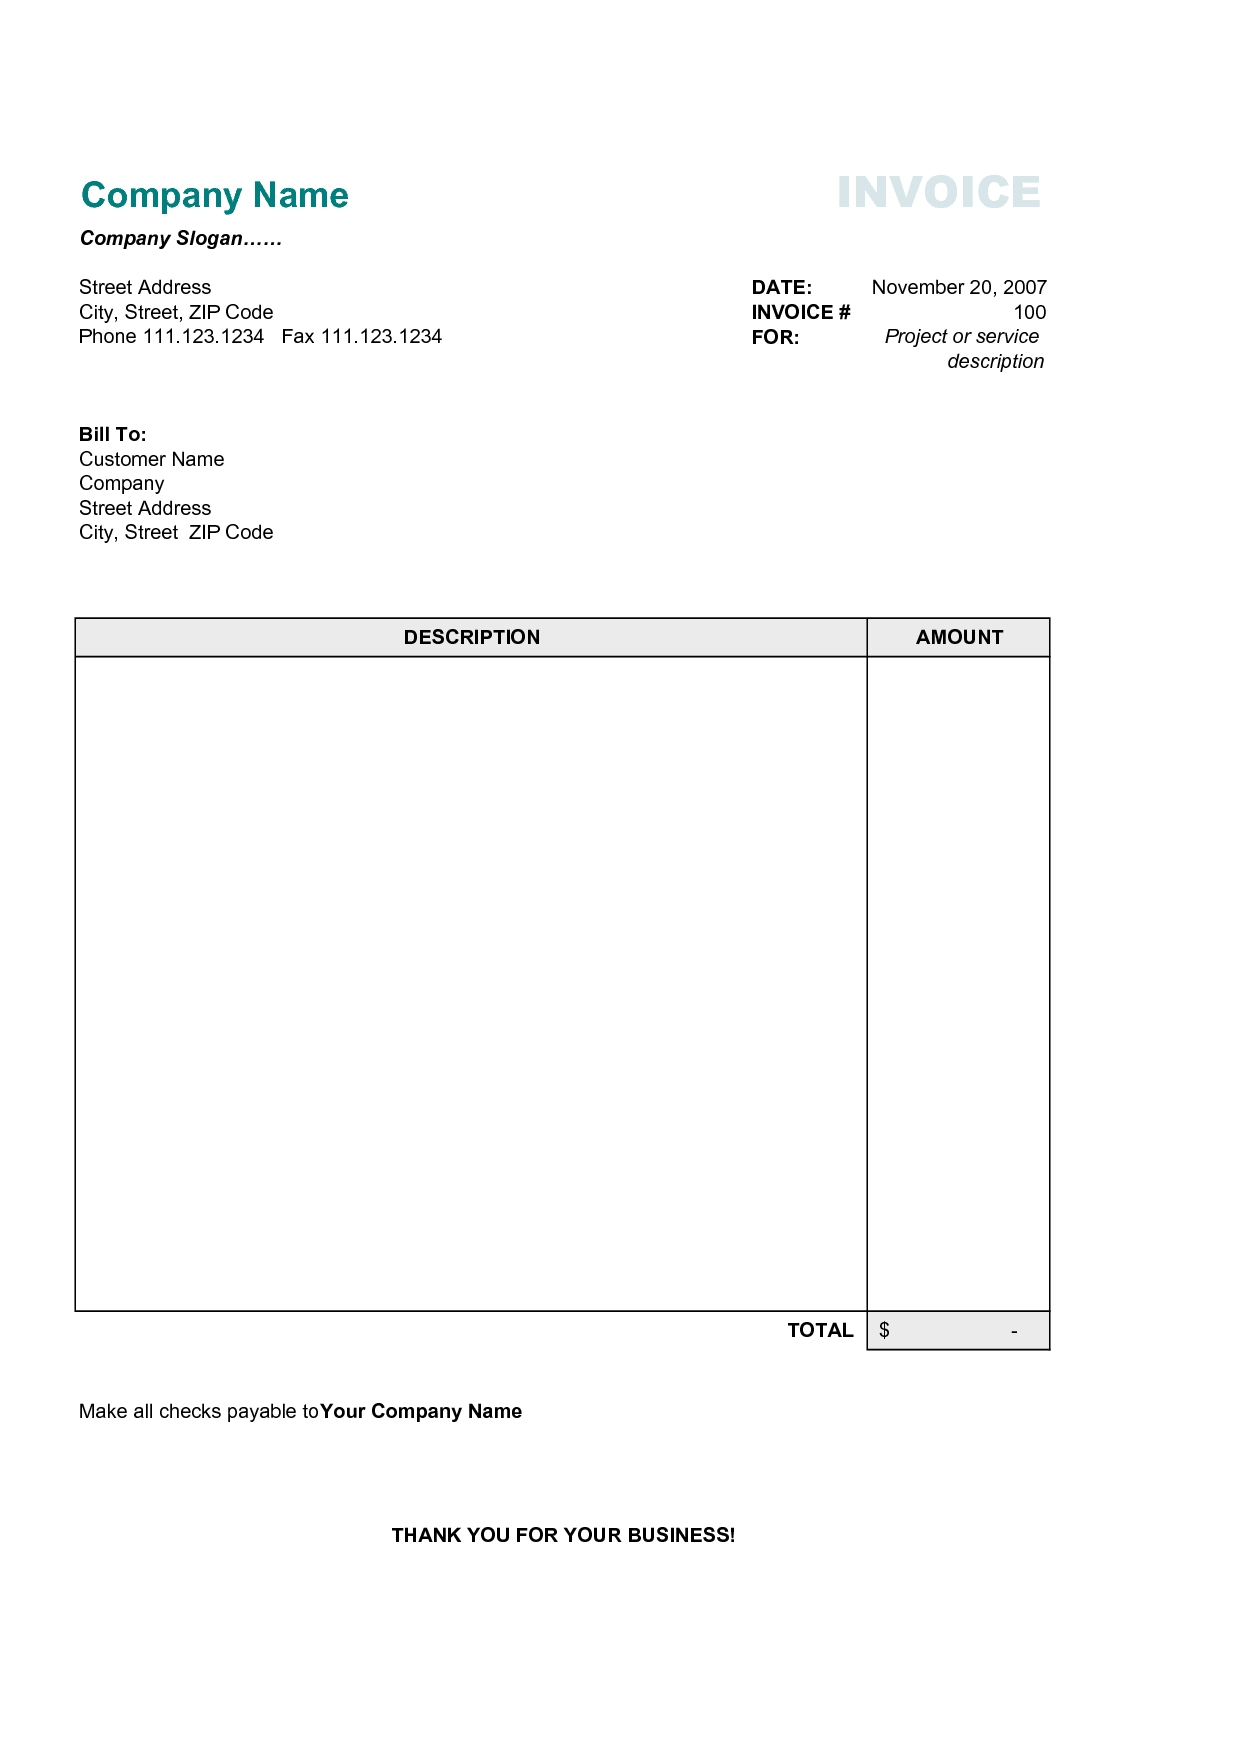 Invoice sample template